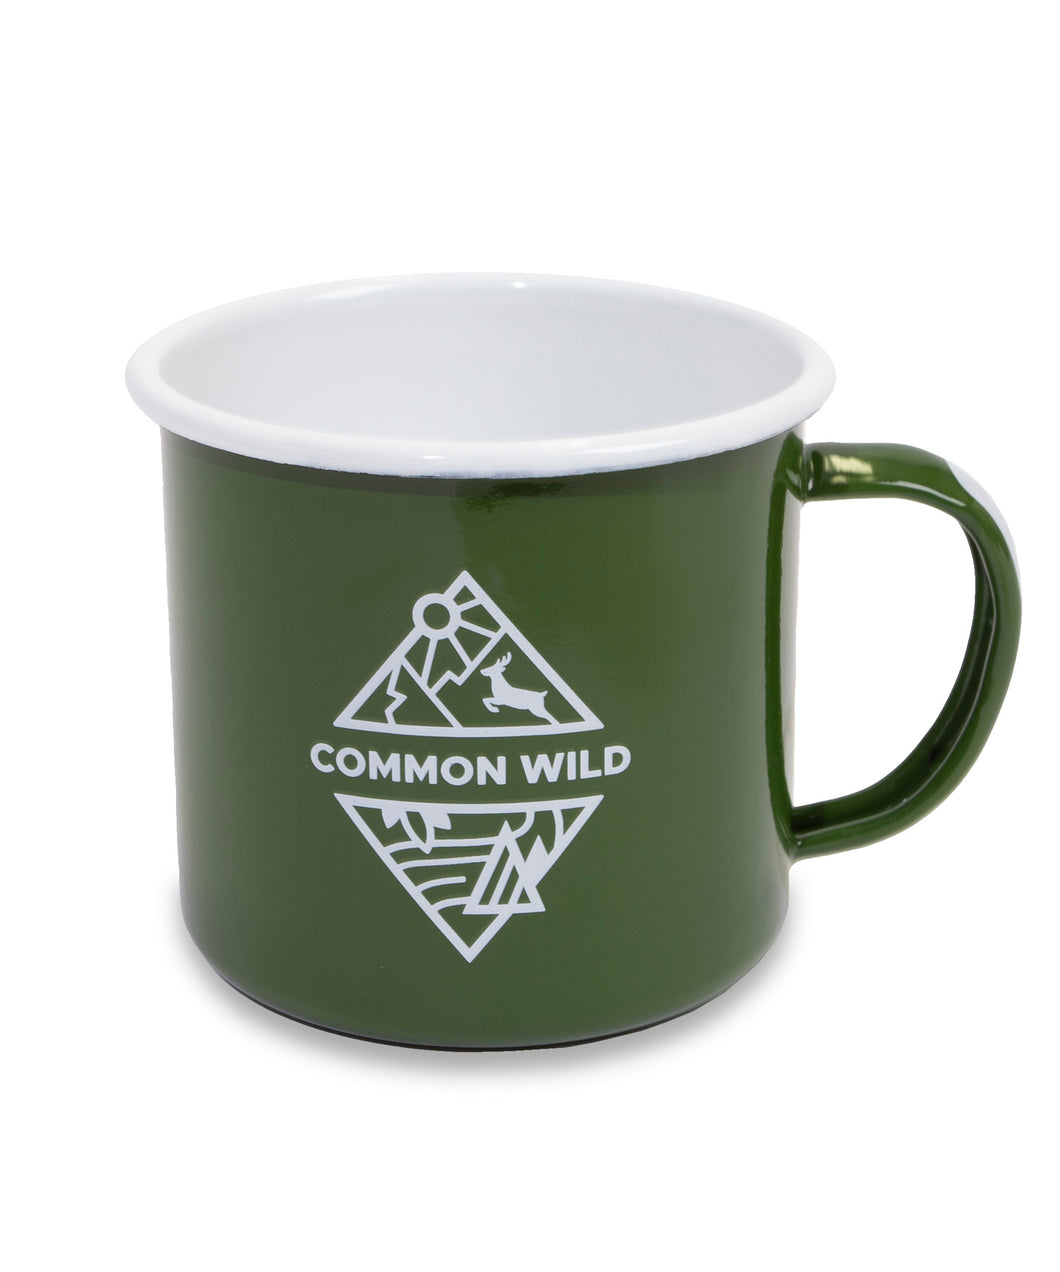 Common Wild Camp Cup